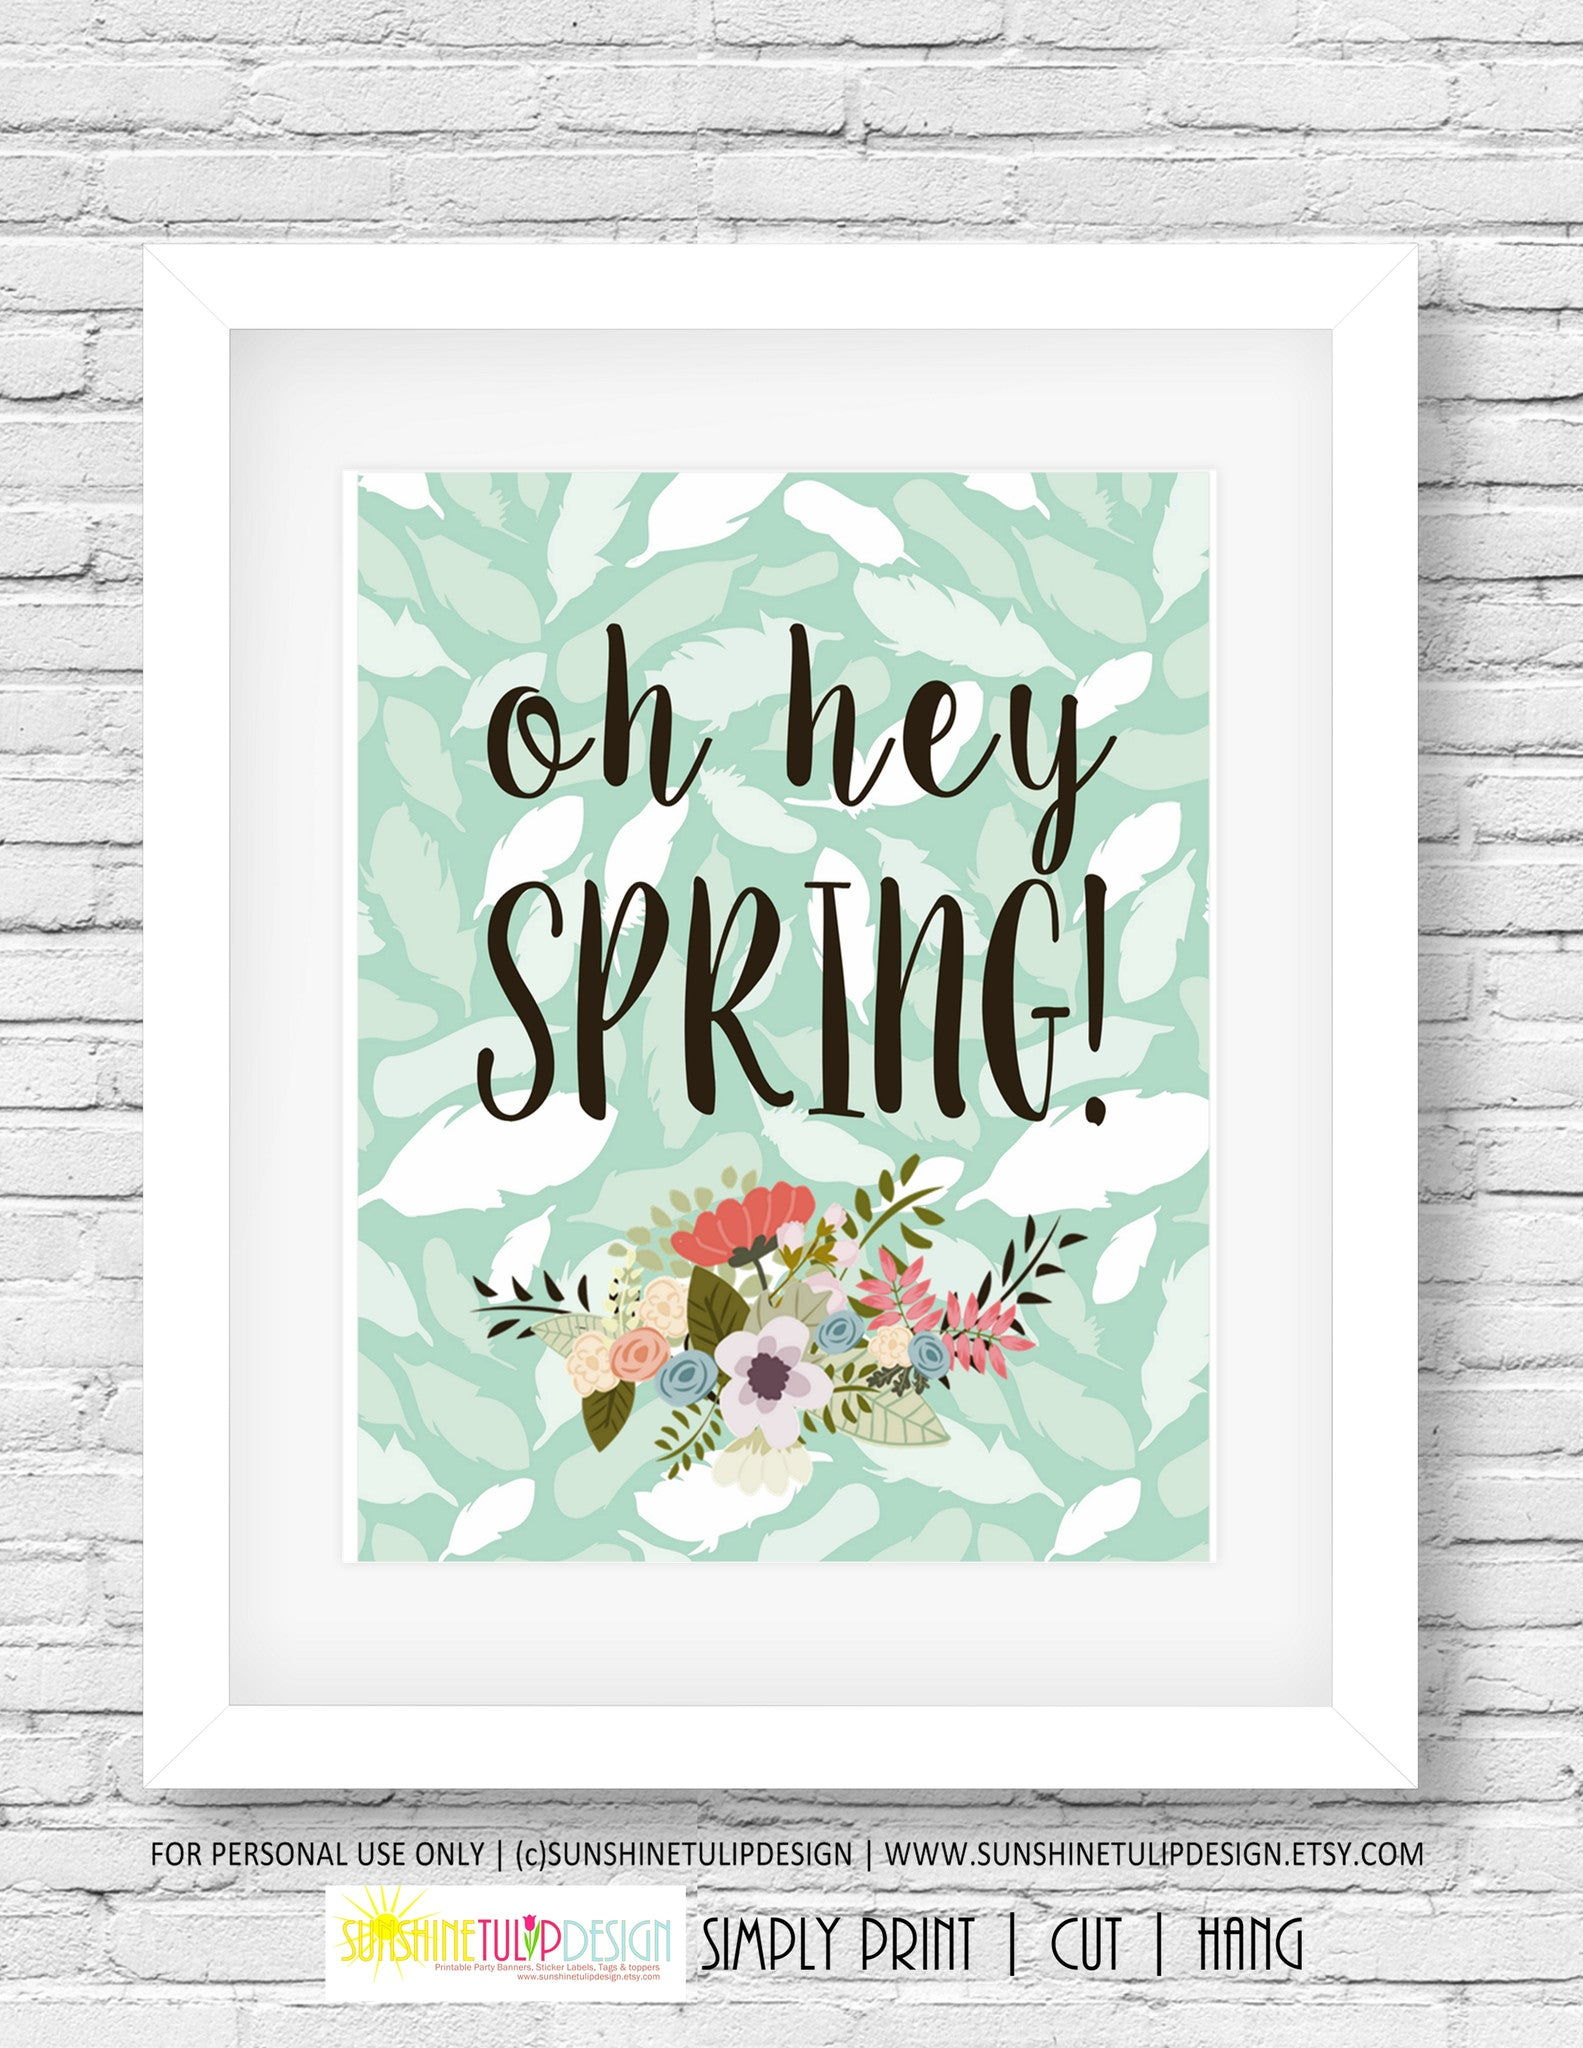 photo regarding Planner Cover Printable named Printable Oh Hey Spring Artwork, Wall Signal, Planner Go over by means of SUNSHINETULIPDESIGN